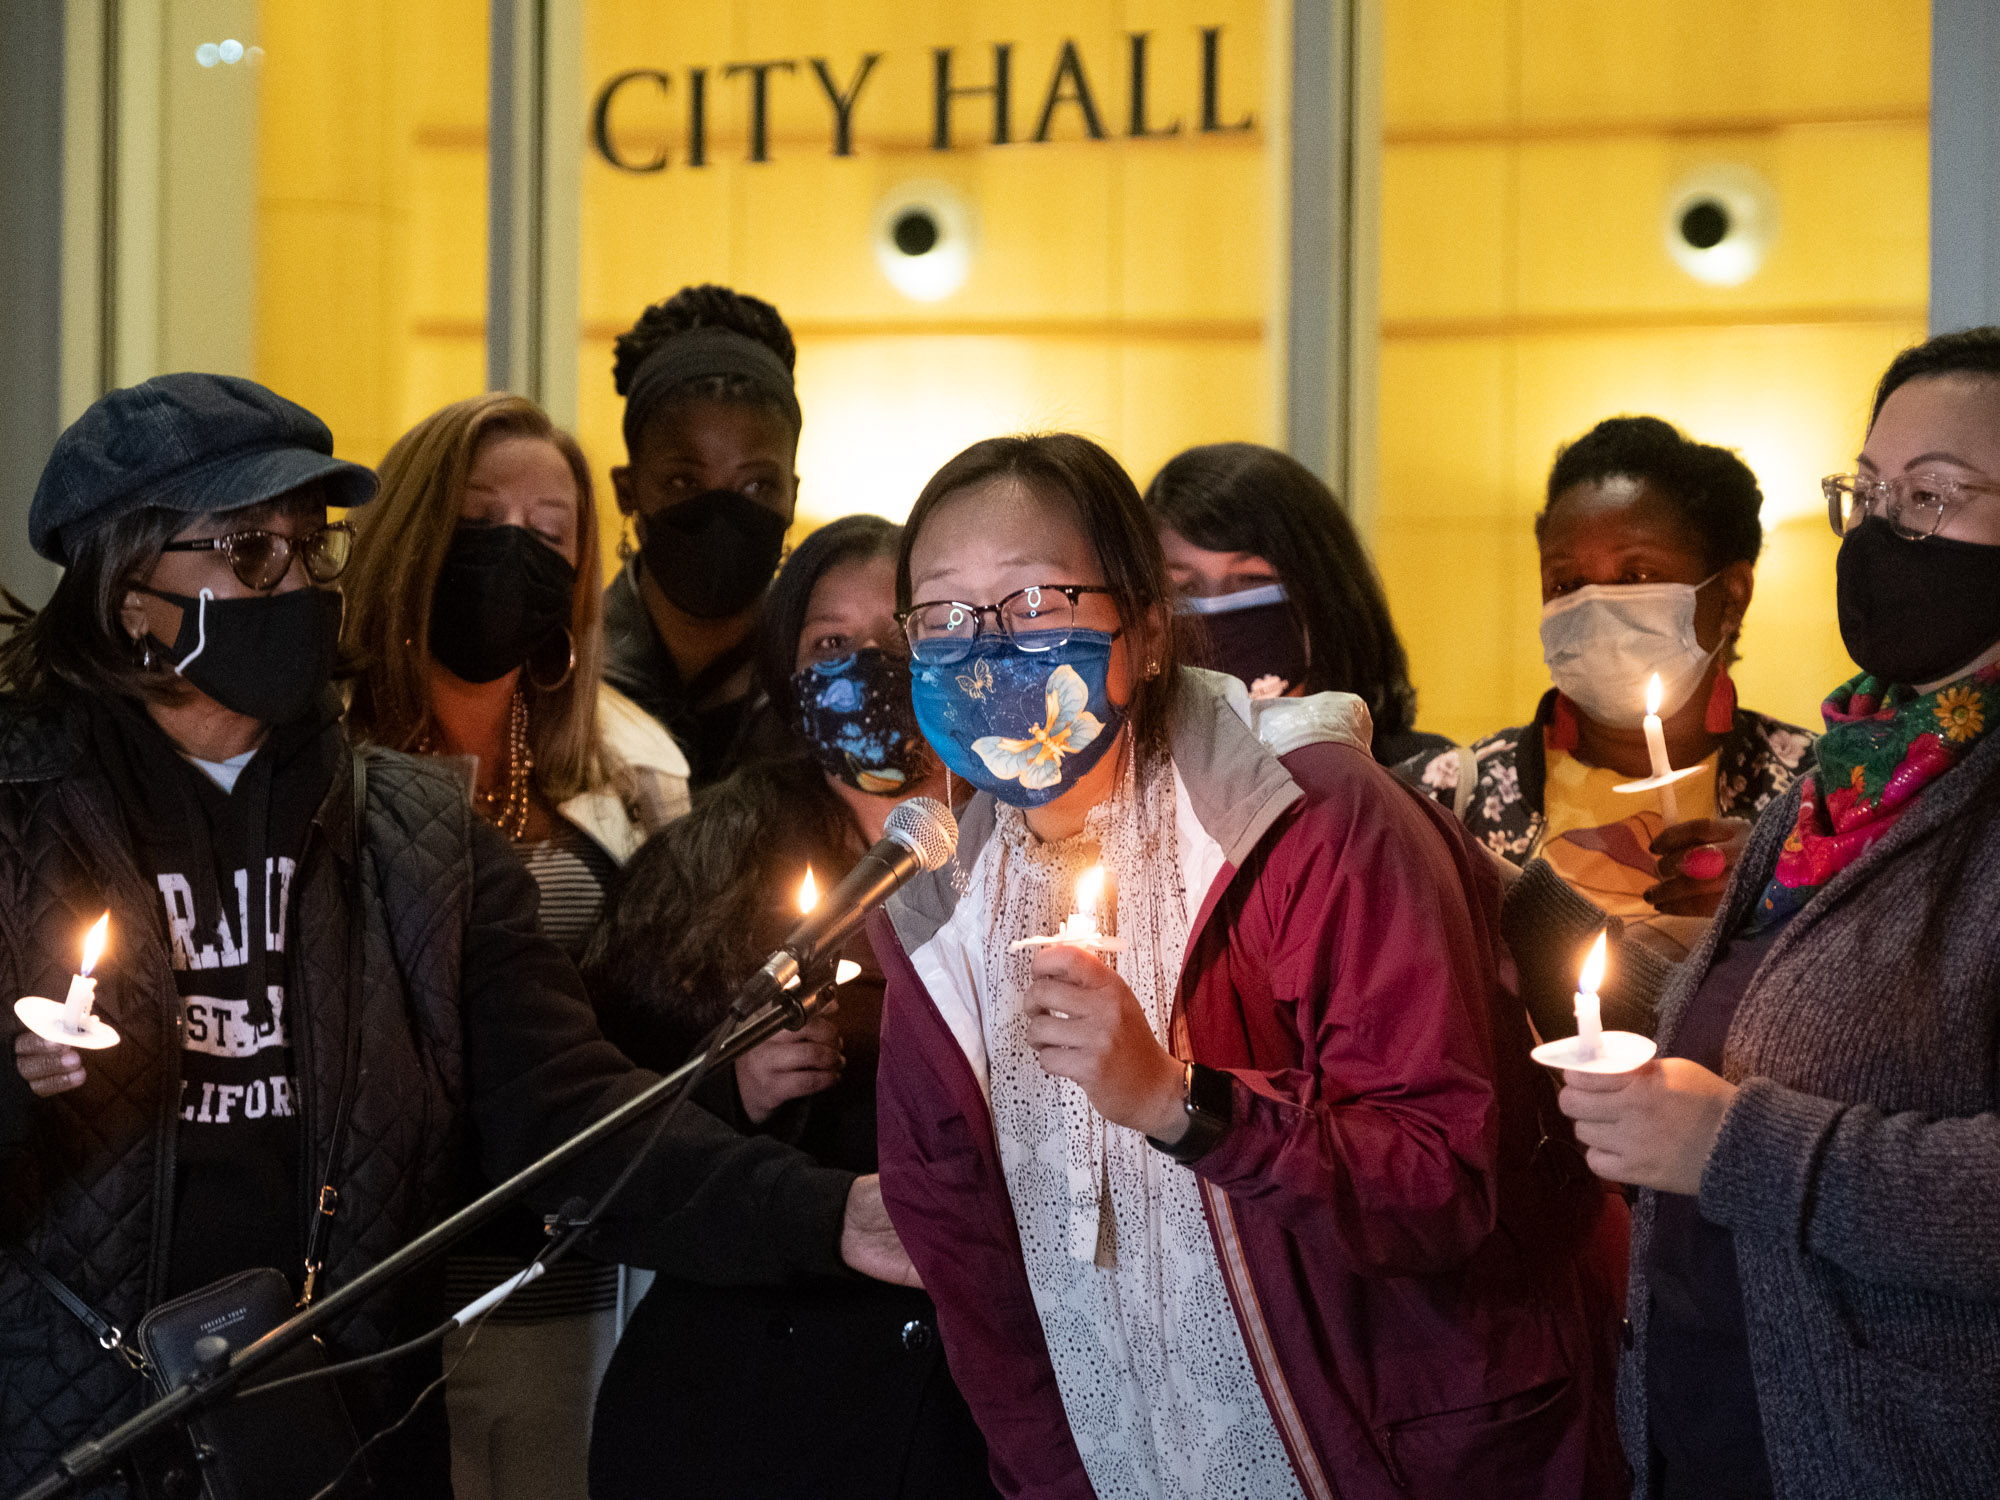 www.capradio.org: 'We Have Been Targeted': Sacramento Asian American Community Demands More Support, Unity After Atlanta Killings